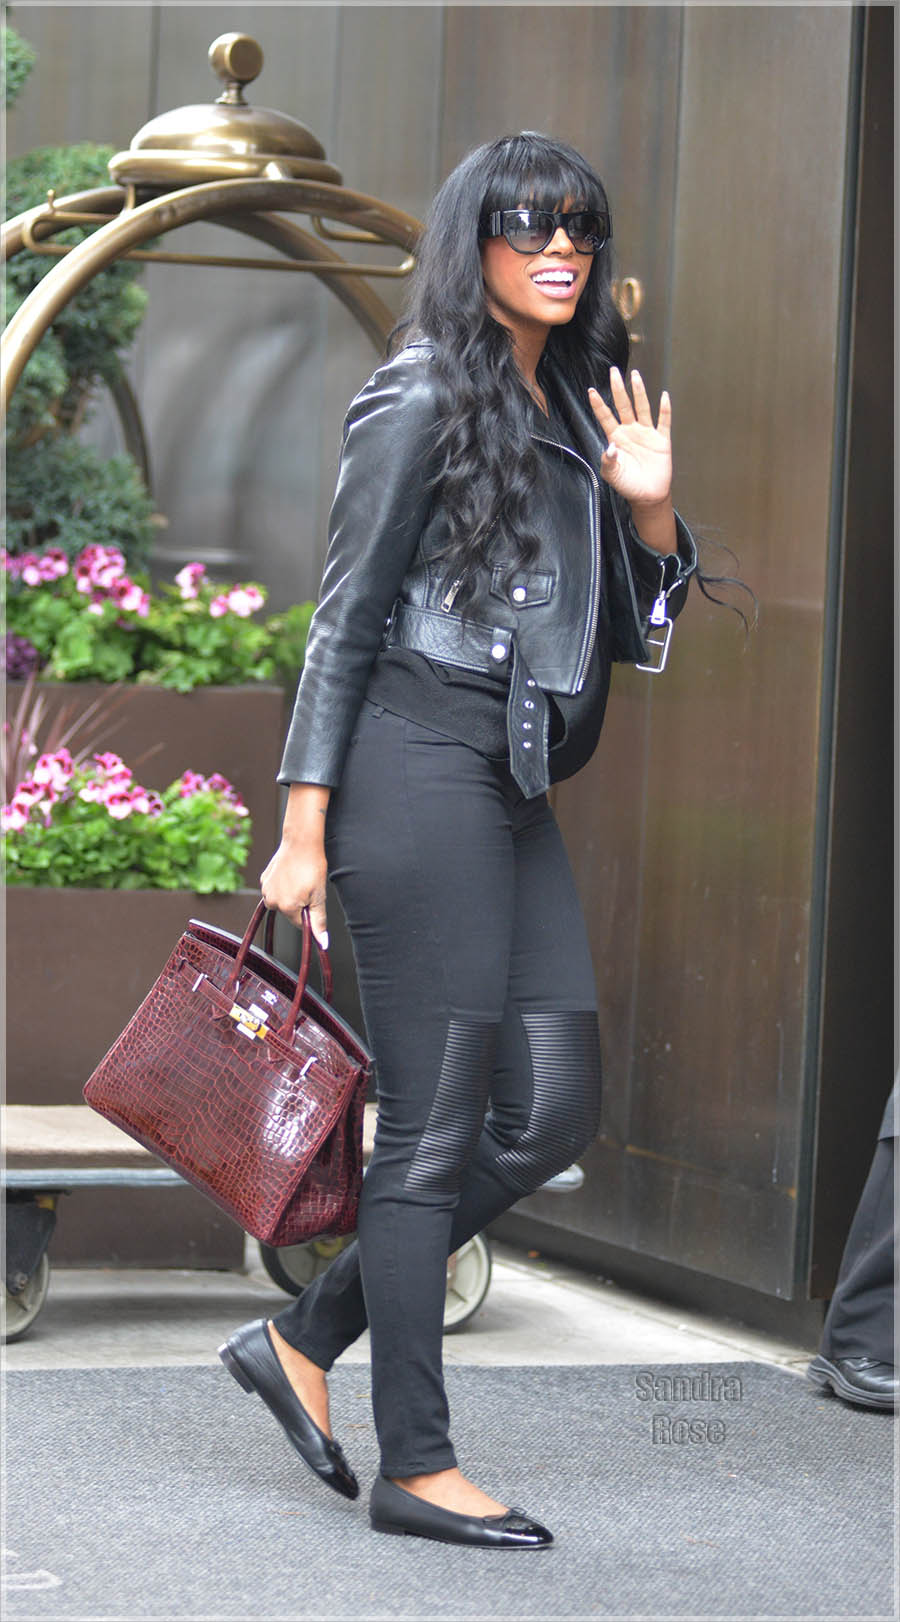 Porsha Williams out and about in New York City